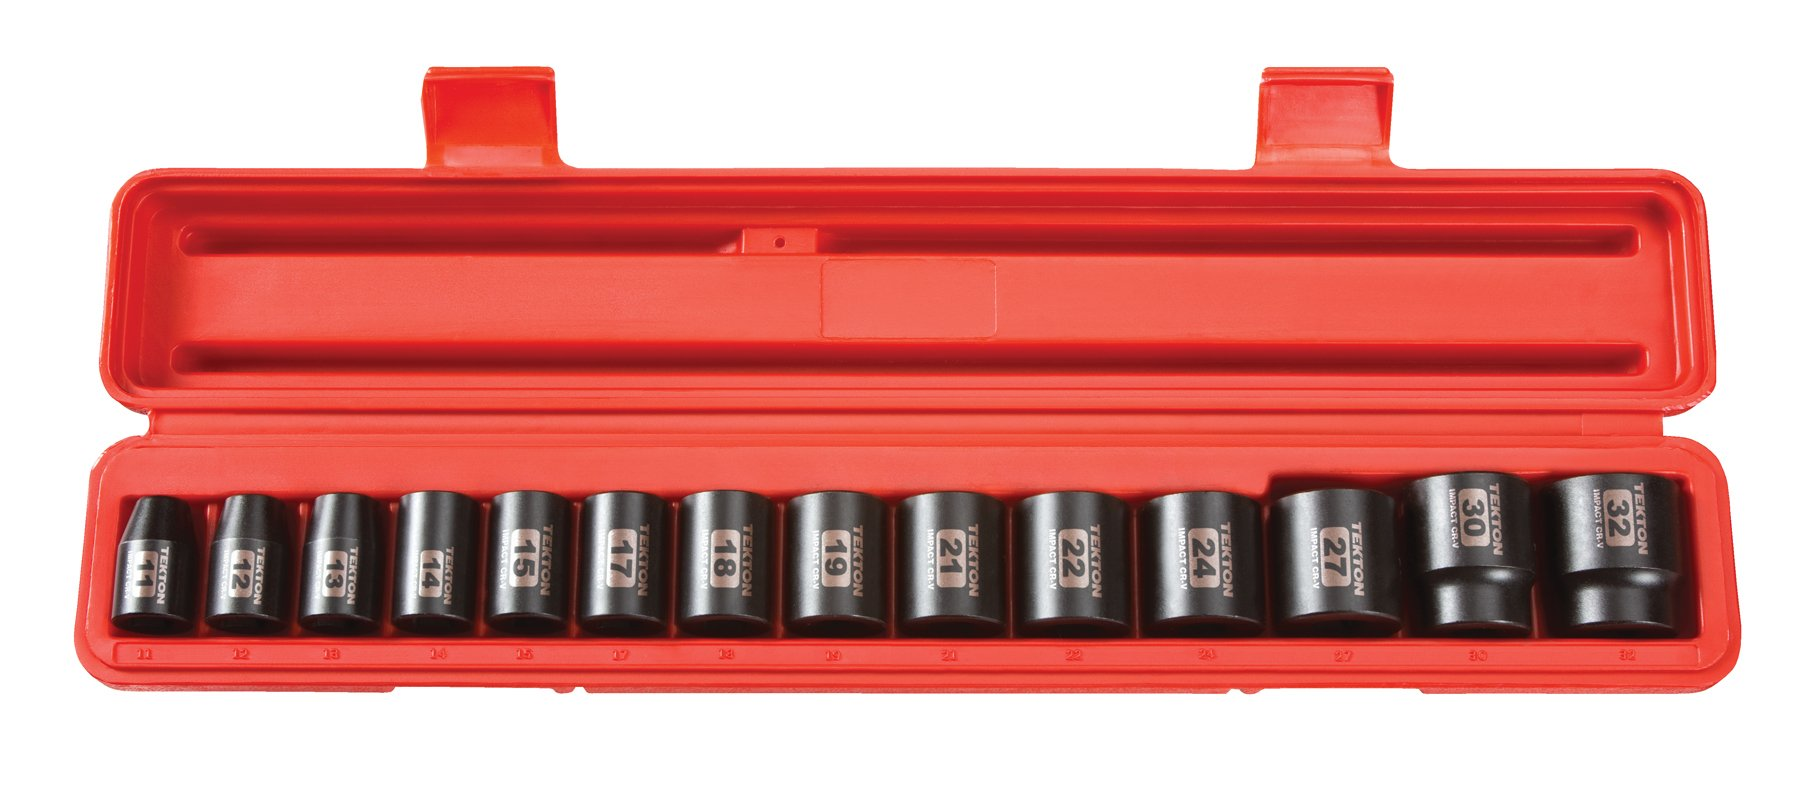 TEKTON 1/2-Inch Drive Shallow Impact Socket Set, Metric, Cr-V, 12-Point, 11 mm - 32 mm, 14-Sockets | 48171 by TEKTON